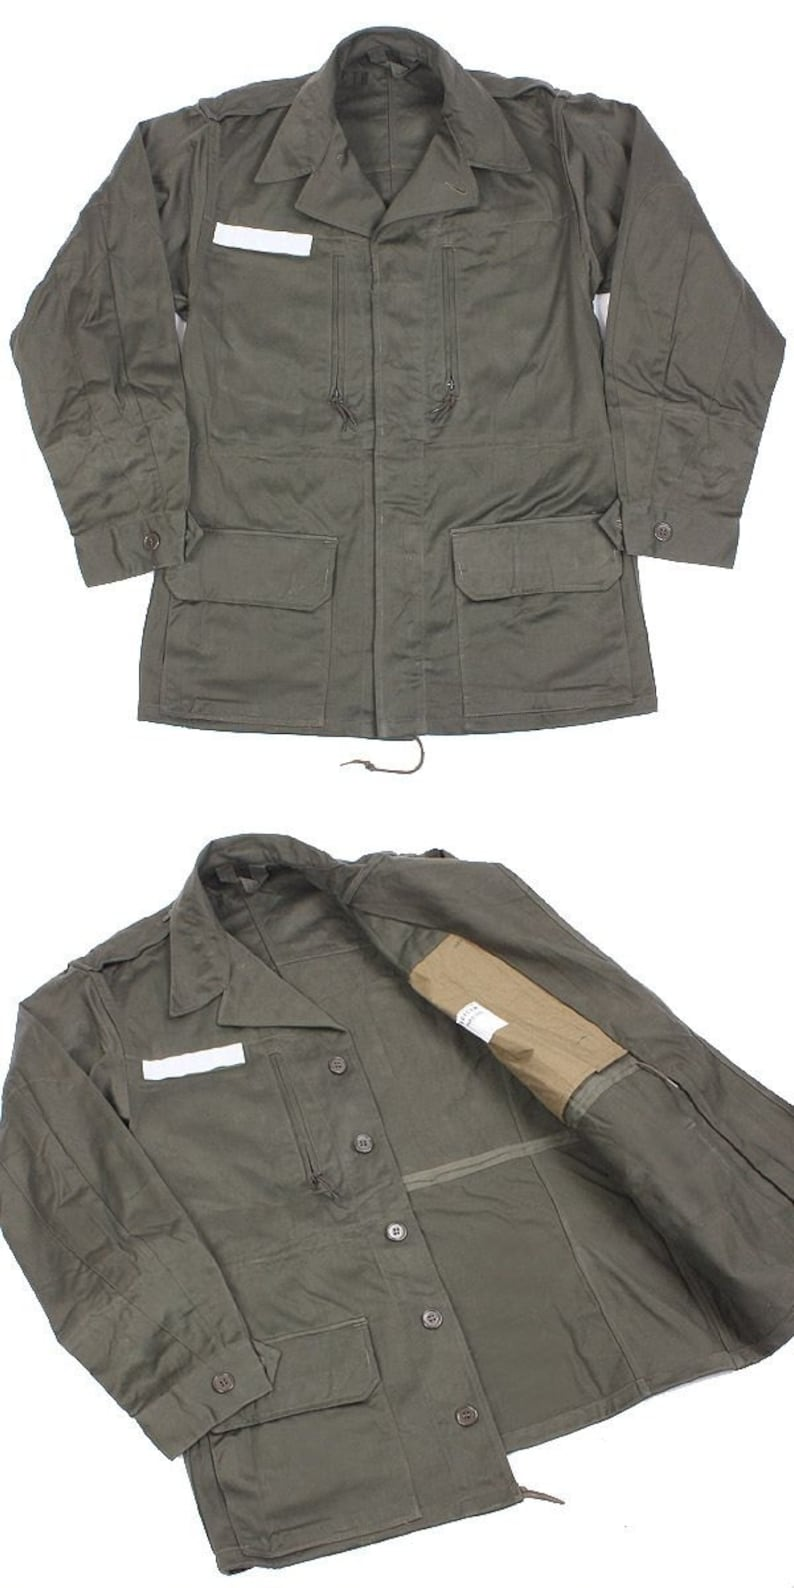 New Unissued French army M64 olive field jacket combat coat surplus  military retro urban vintage